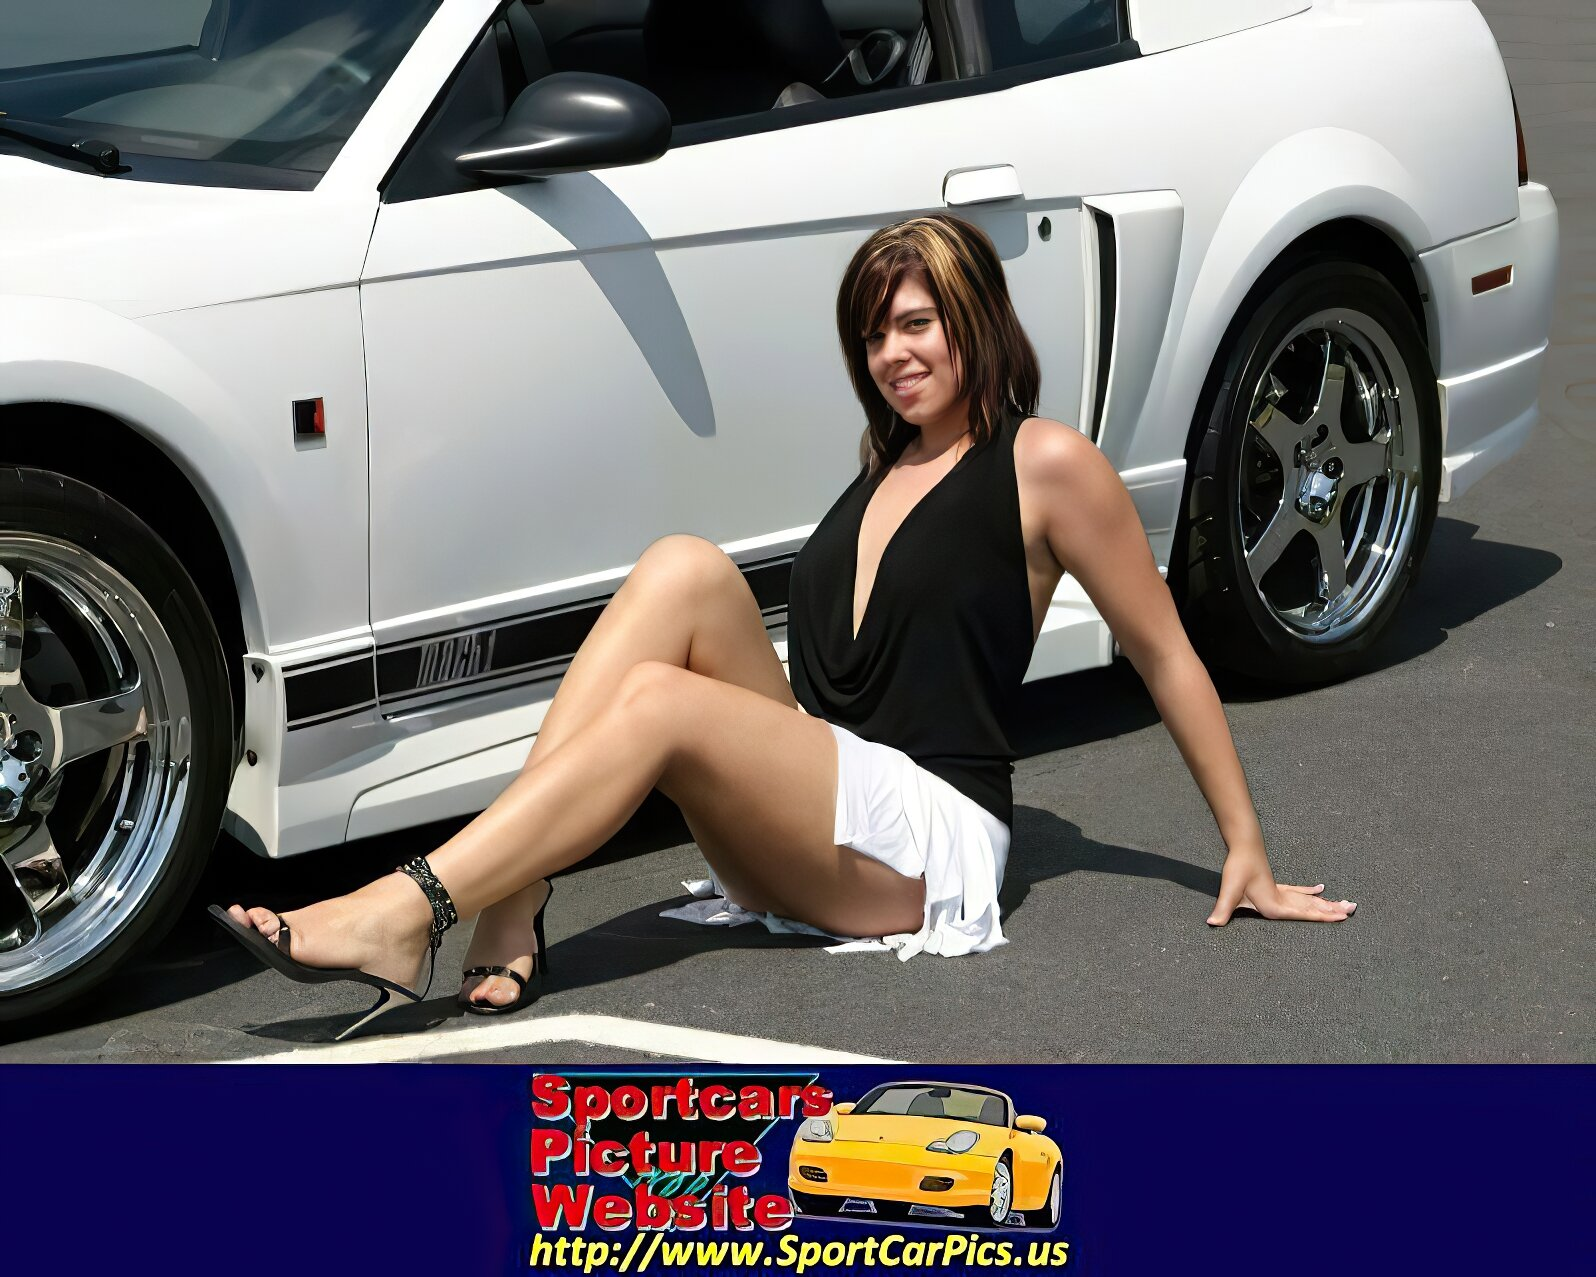 Ford Mustang - ID: 17386